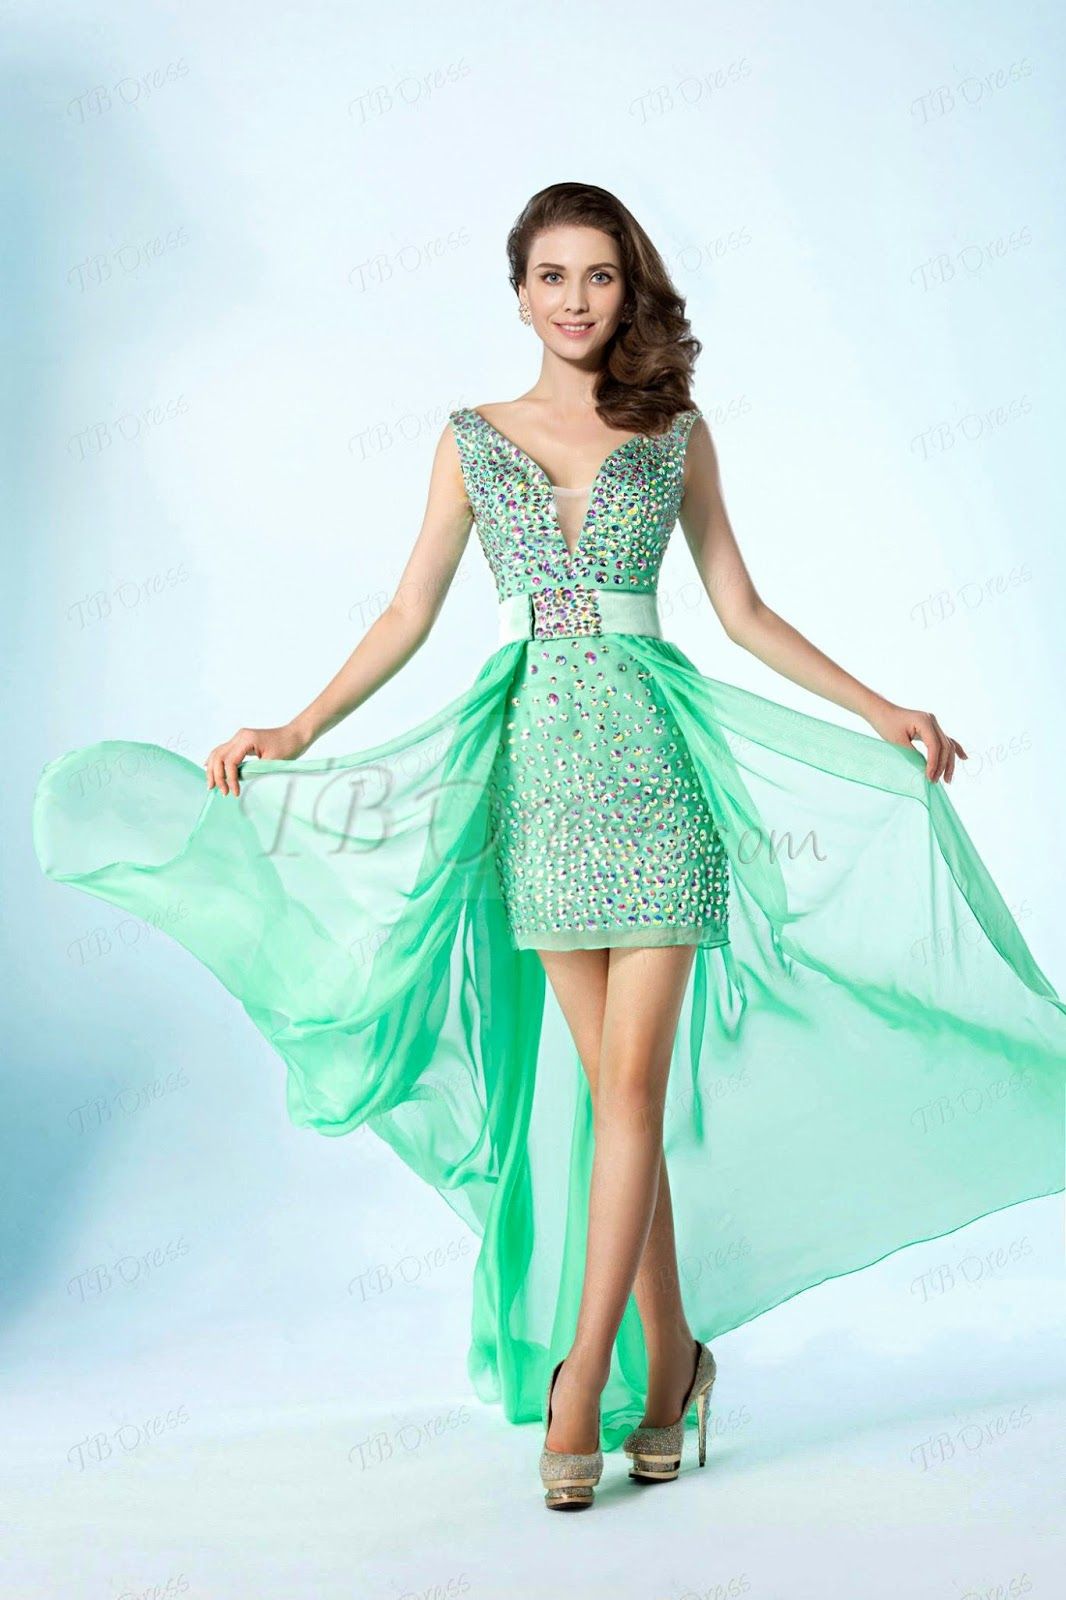 Unique Prom Dresses for Different Body Types | The ...